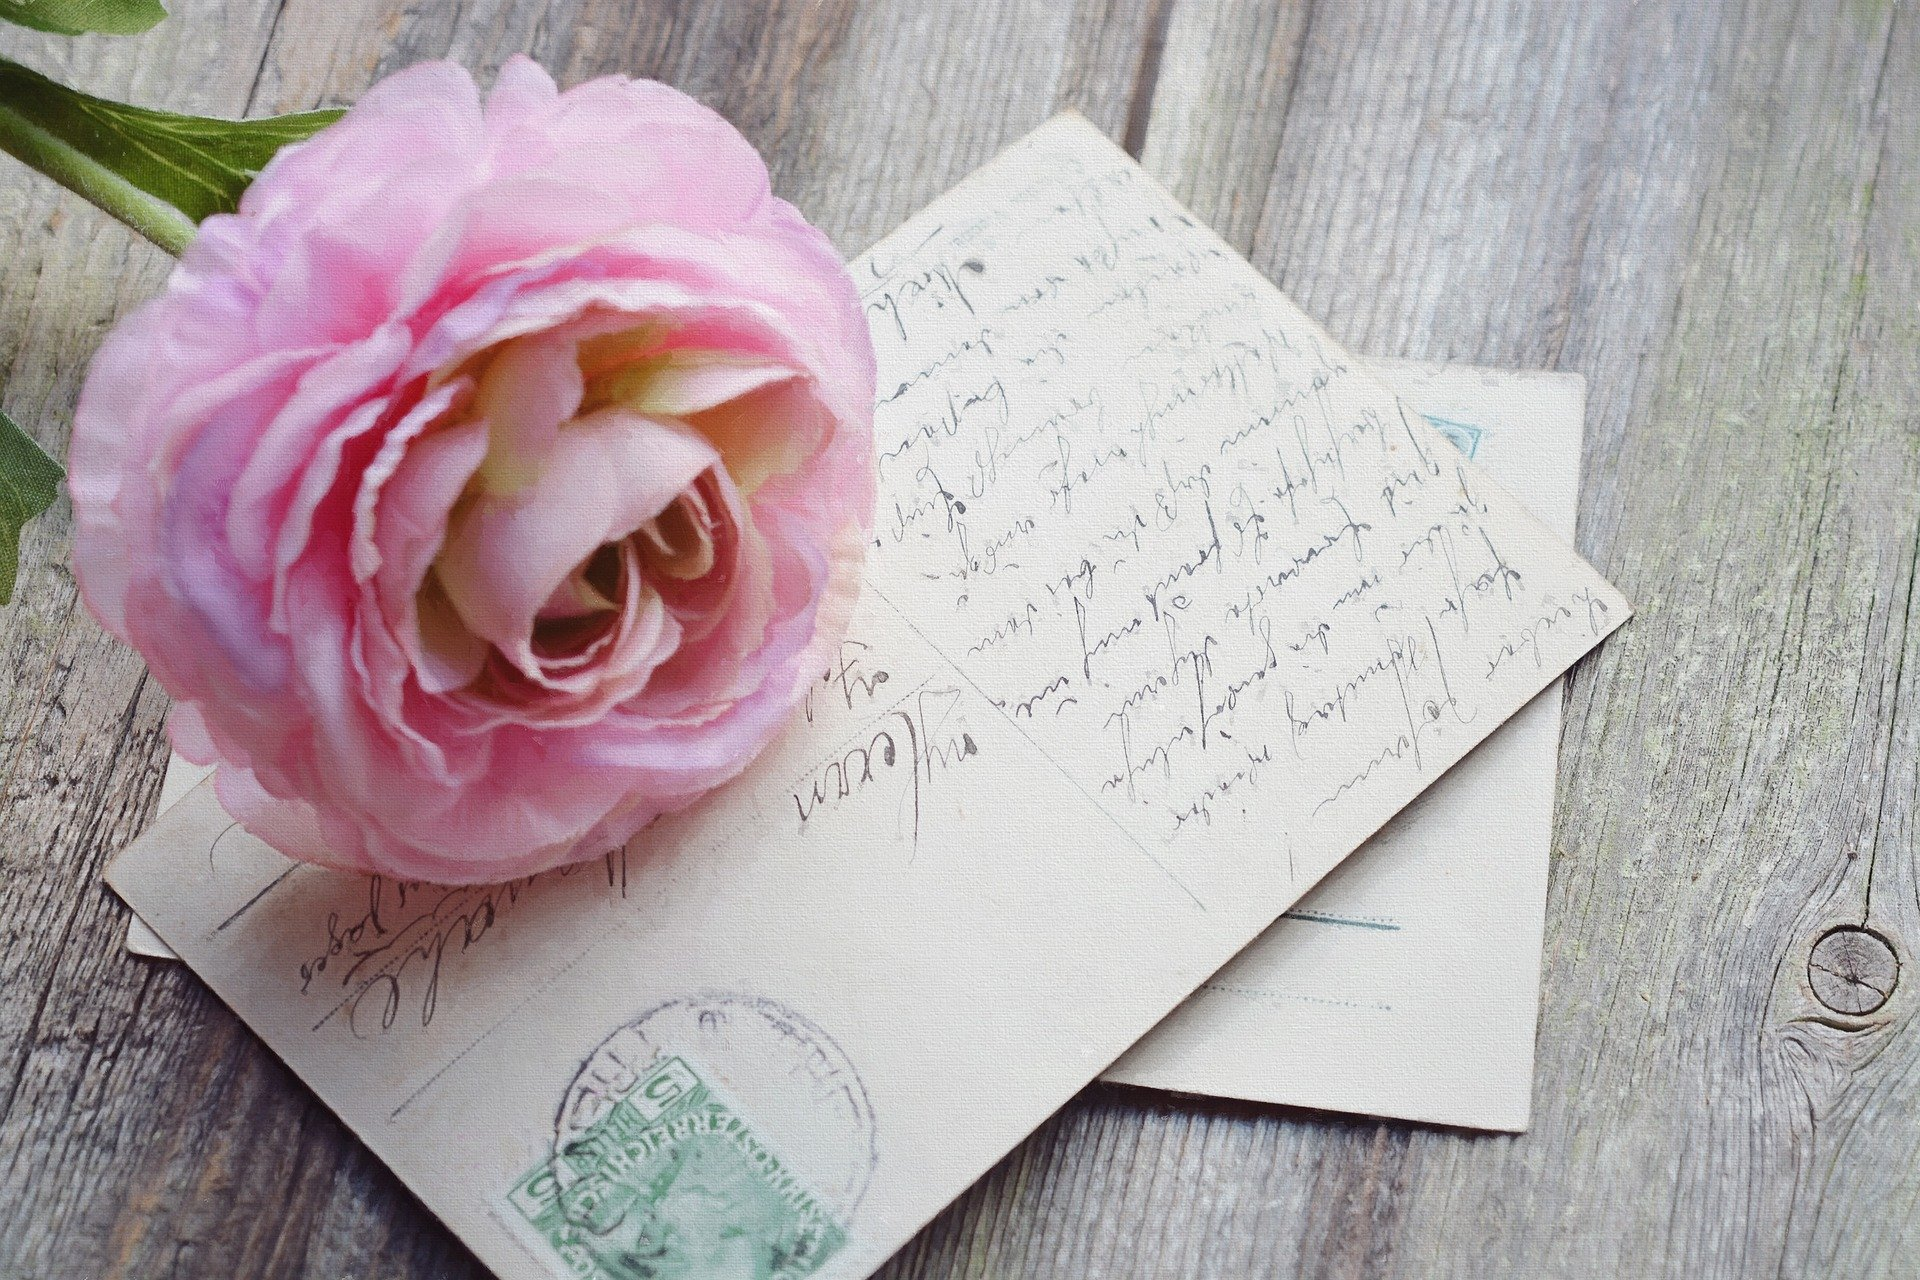 Postcard and a flower. | Source: Pixabay